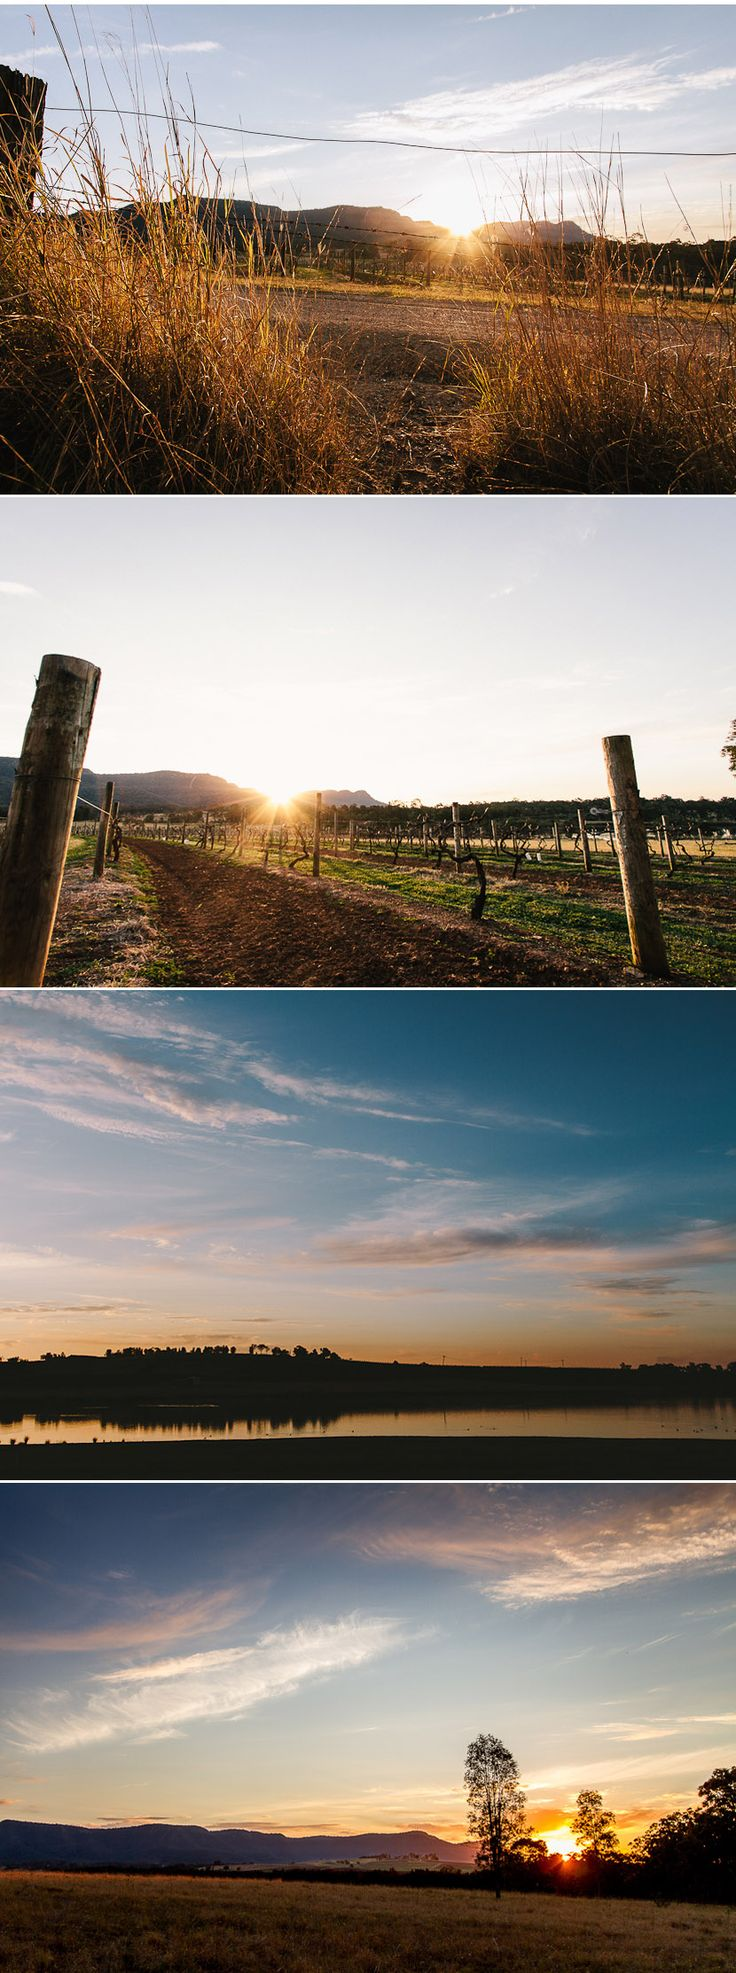 Gorgeous sunsets in the Hunter Valley! Have you considered a wedding at Sunset?  #chateauelan #huntervalley #winecountry #australia #nsw #wedding